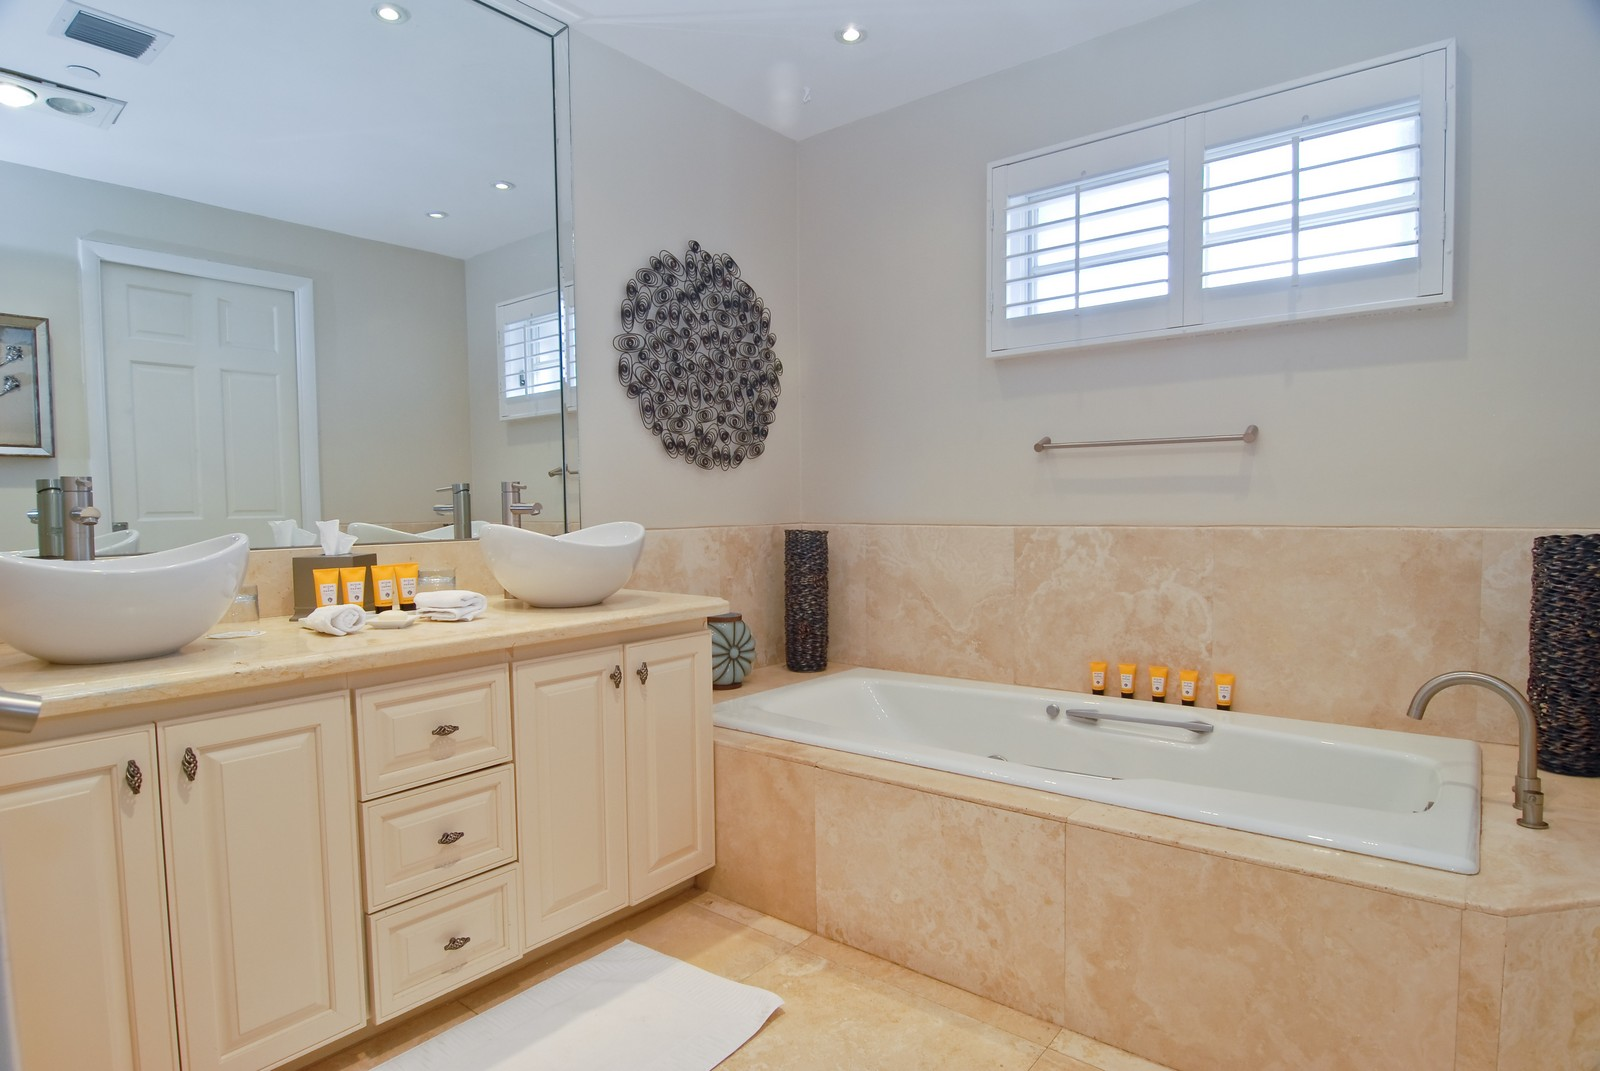 Real Estate Photography - 15521 Fisher Island Dr, Fisher Island, FL, 33109 - Master Bathroom